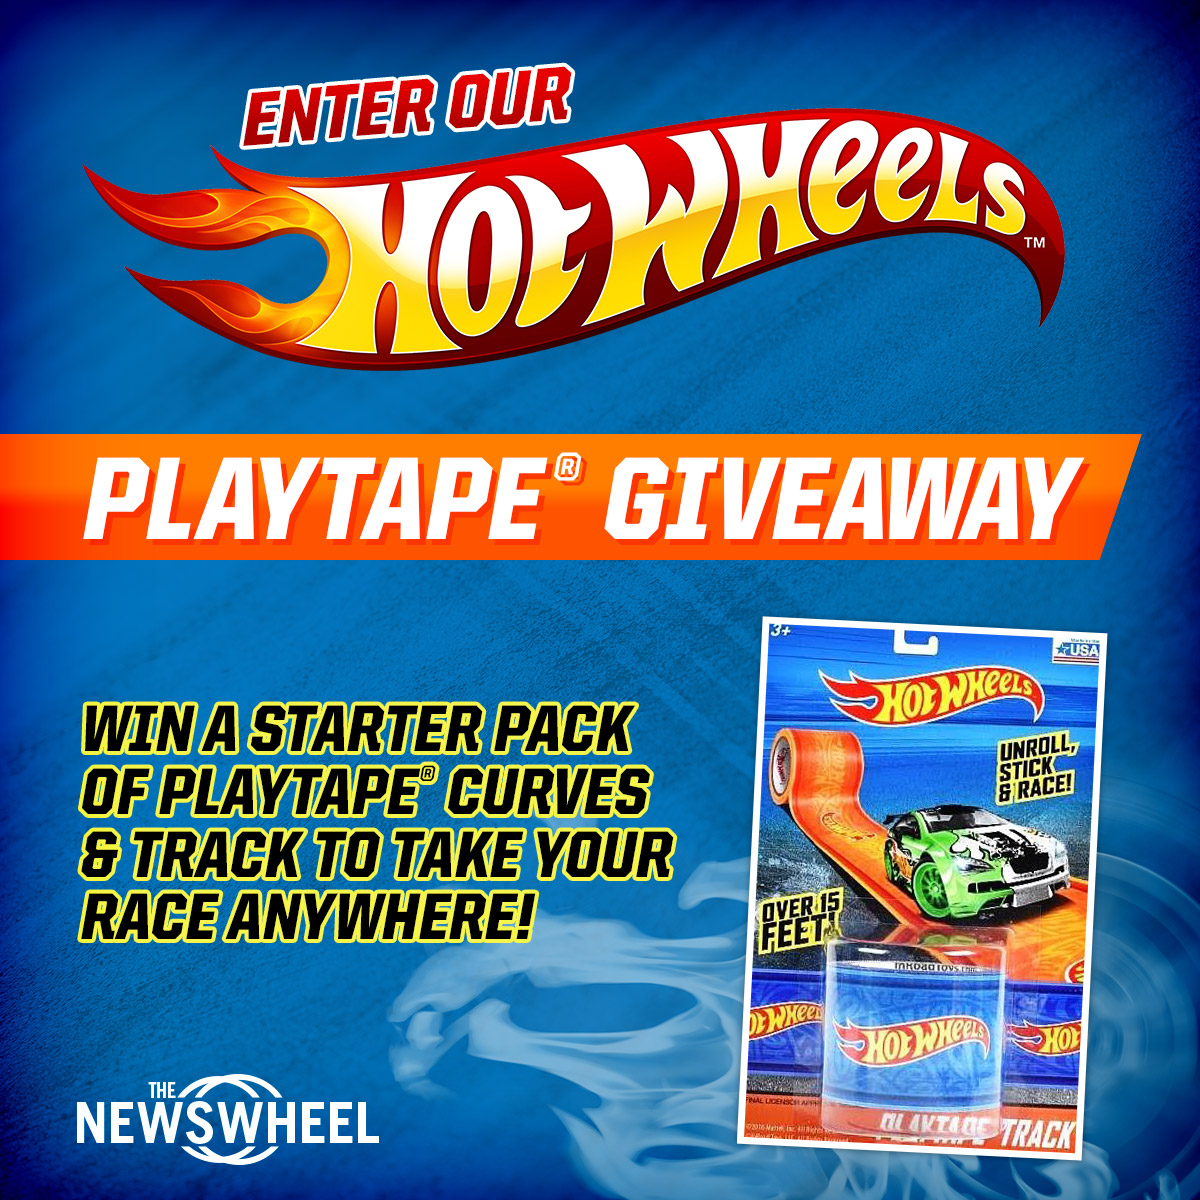 Enter Our Giveaway To Win A Hot Wheels PlayTape Pack